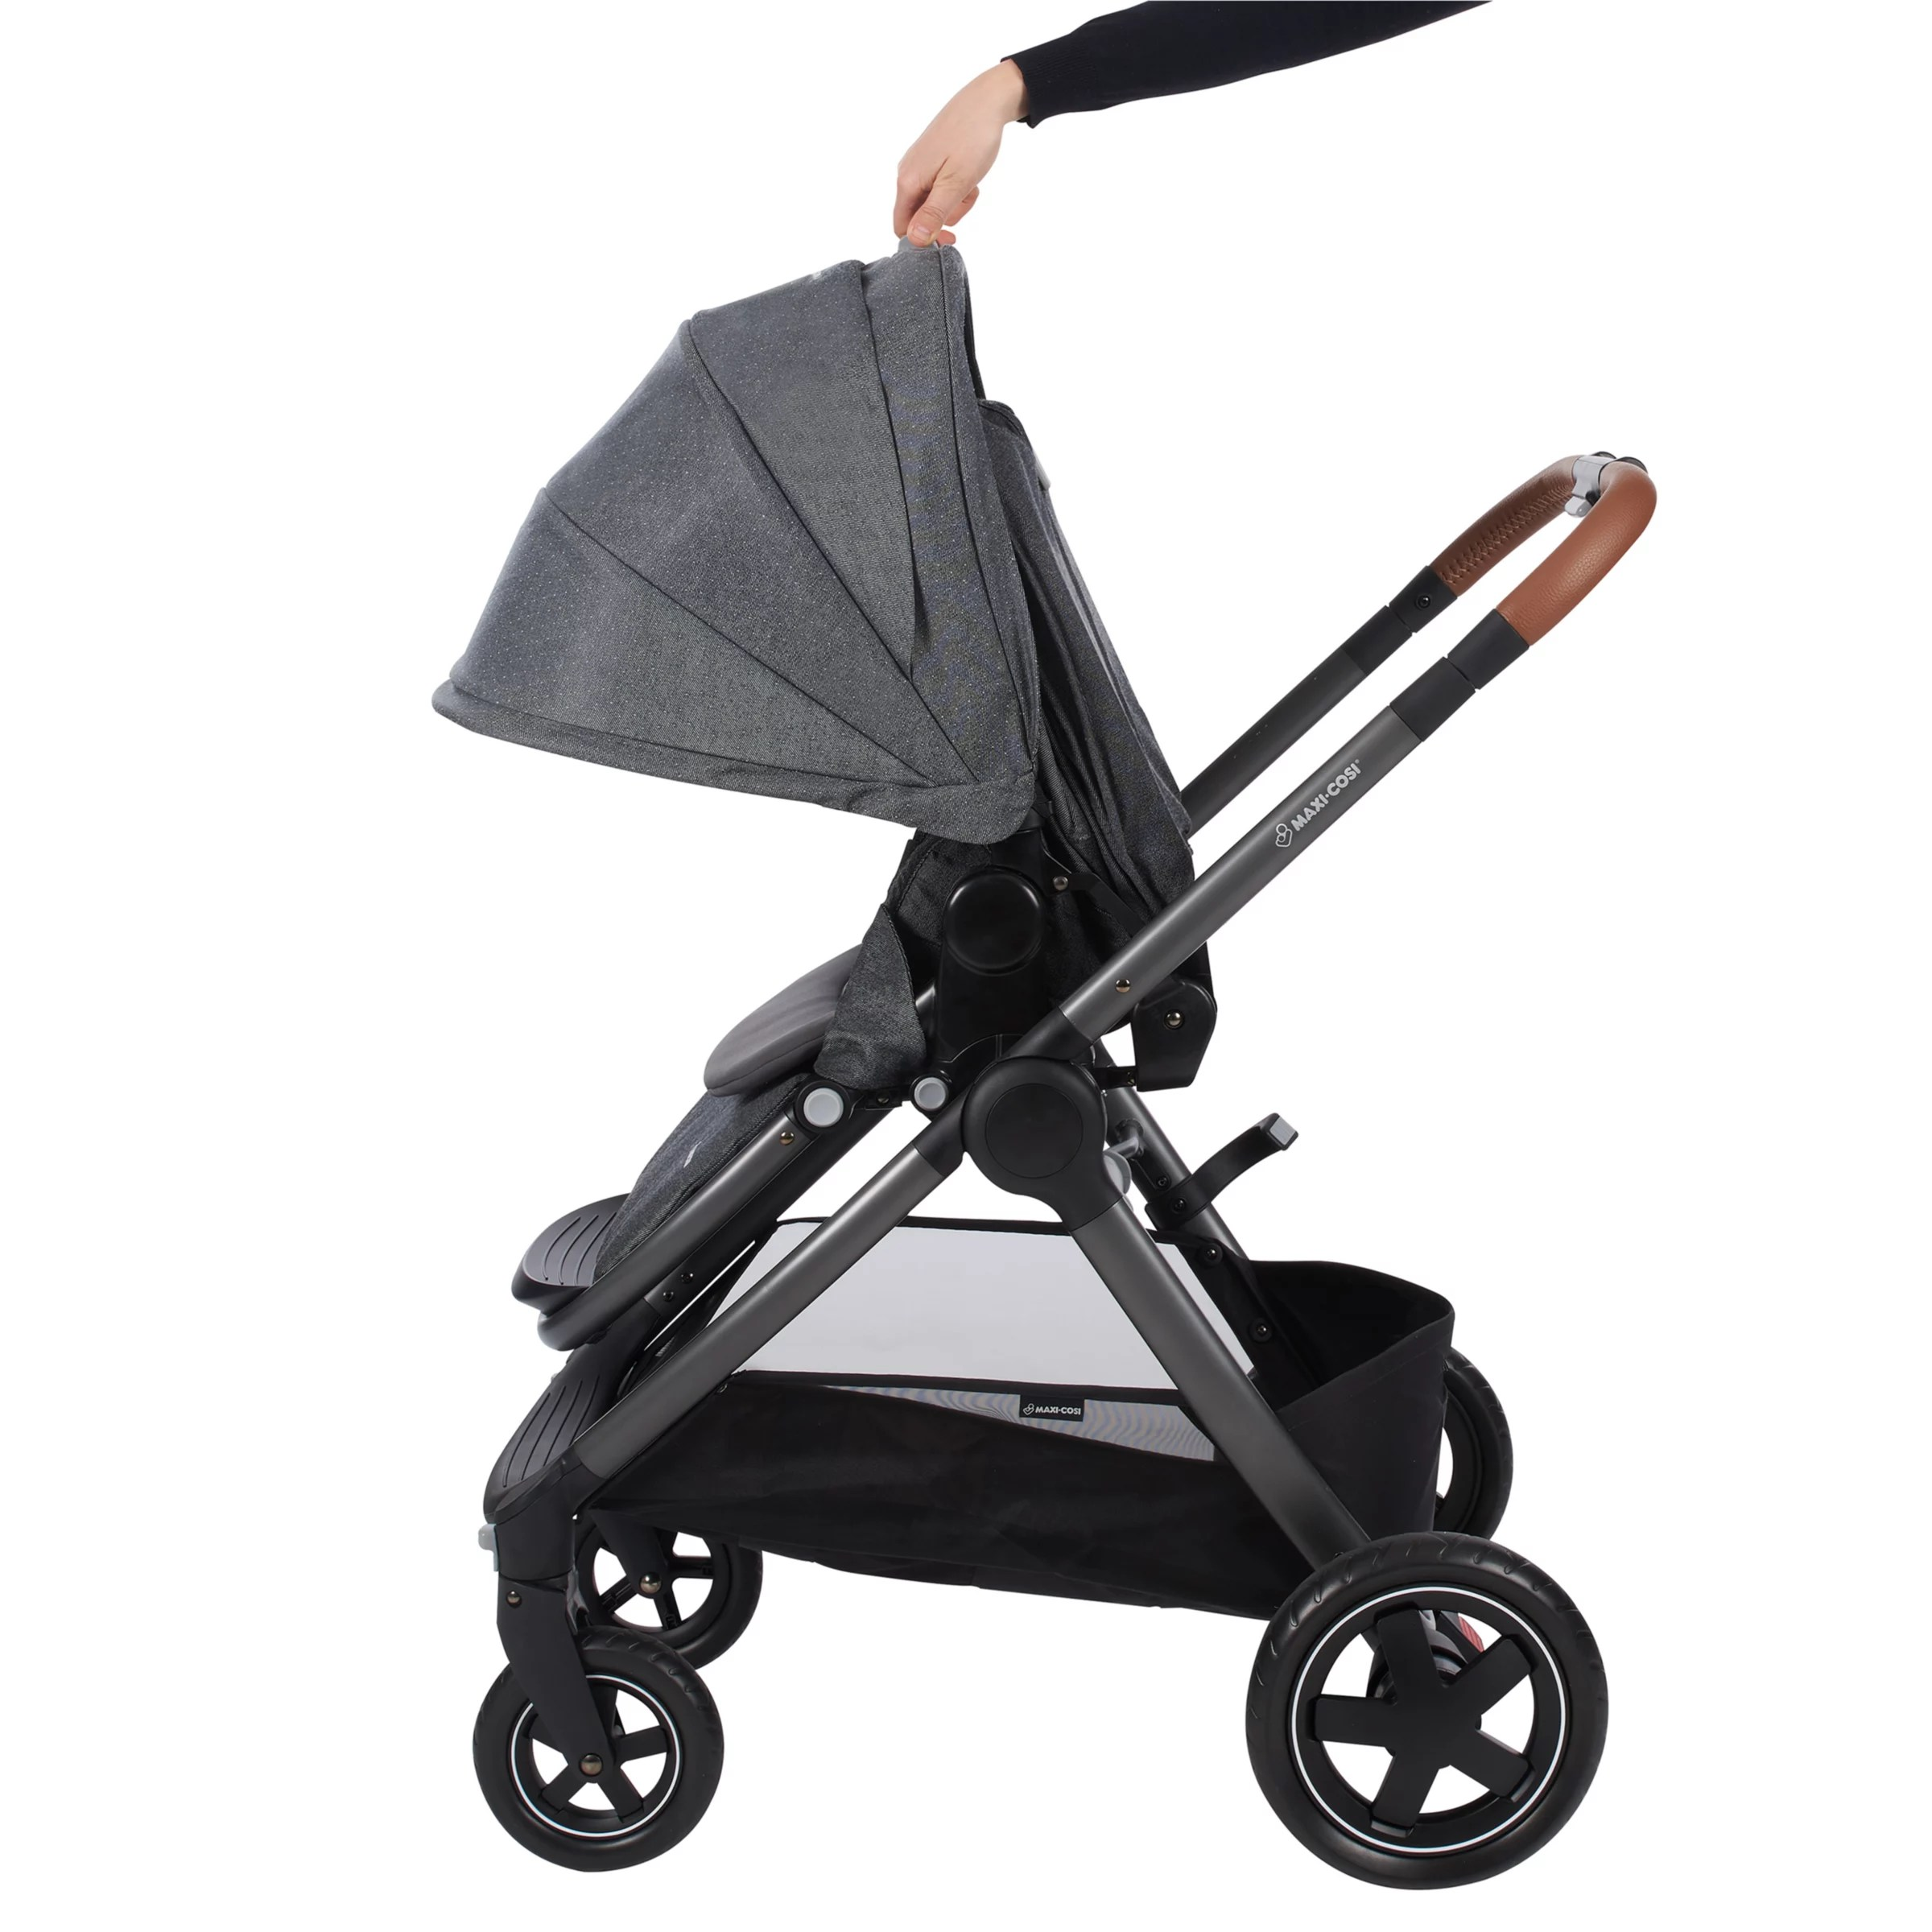 Maxi-cosi Adorra Travel System - Graphic Flower Maxi Cosi Adorra Pushchair Sparkling Grey